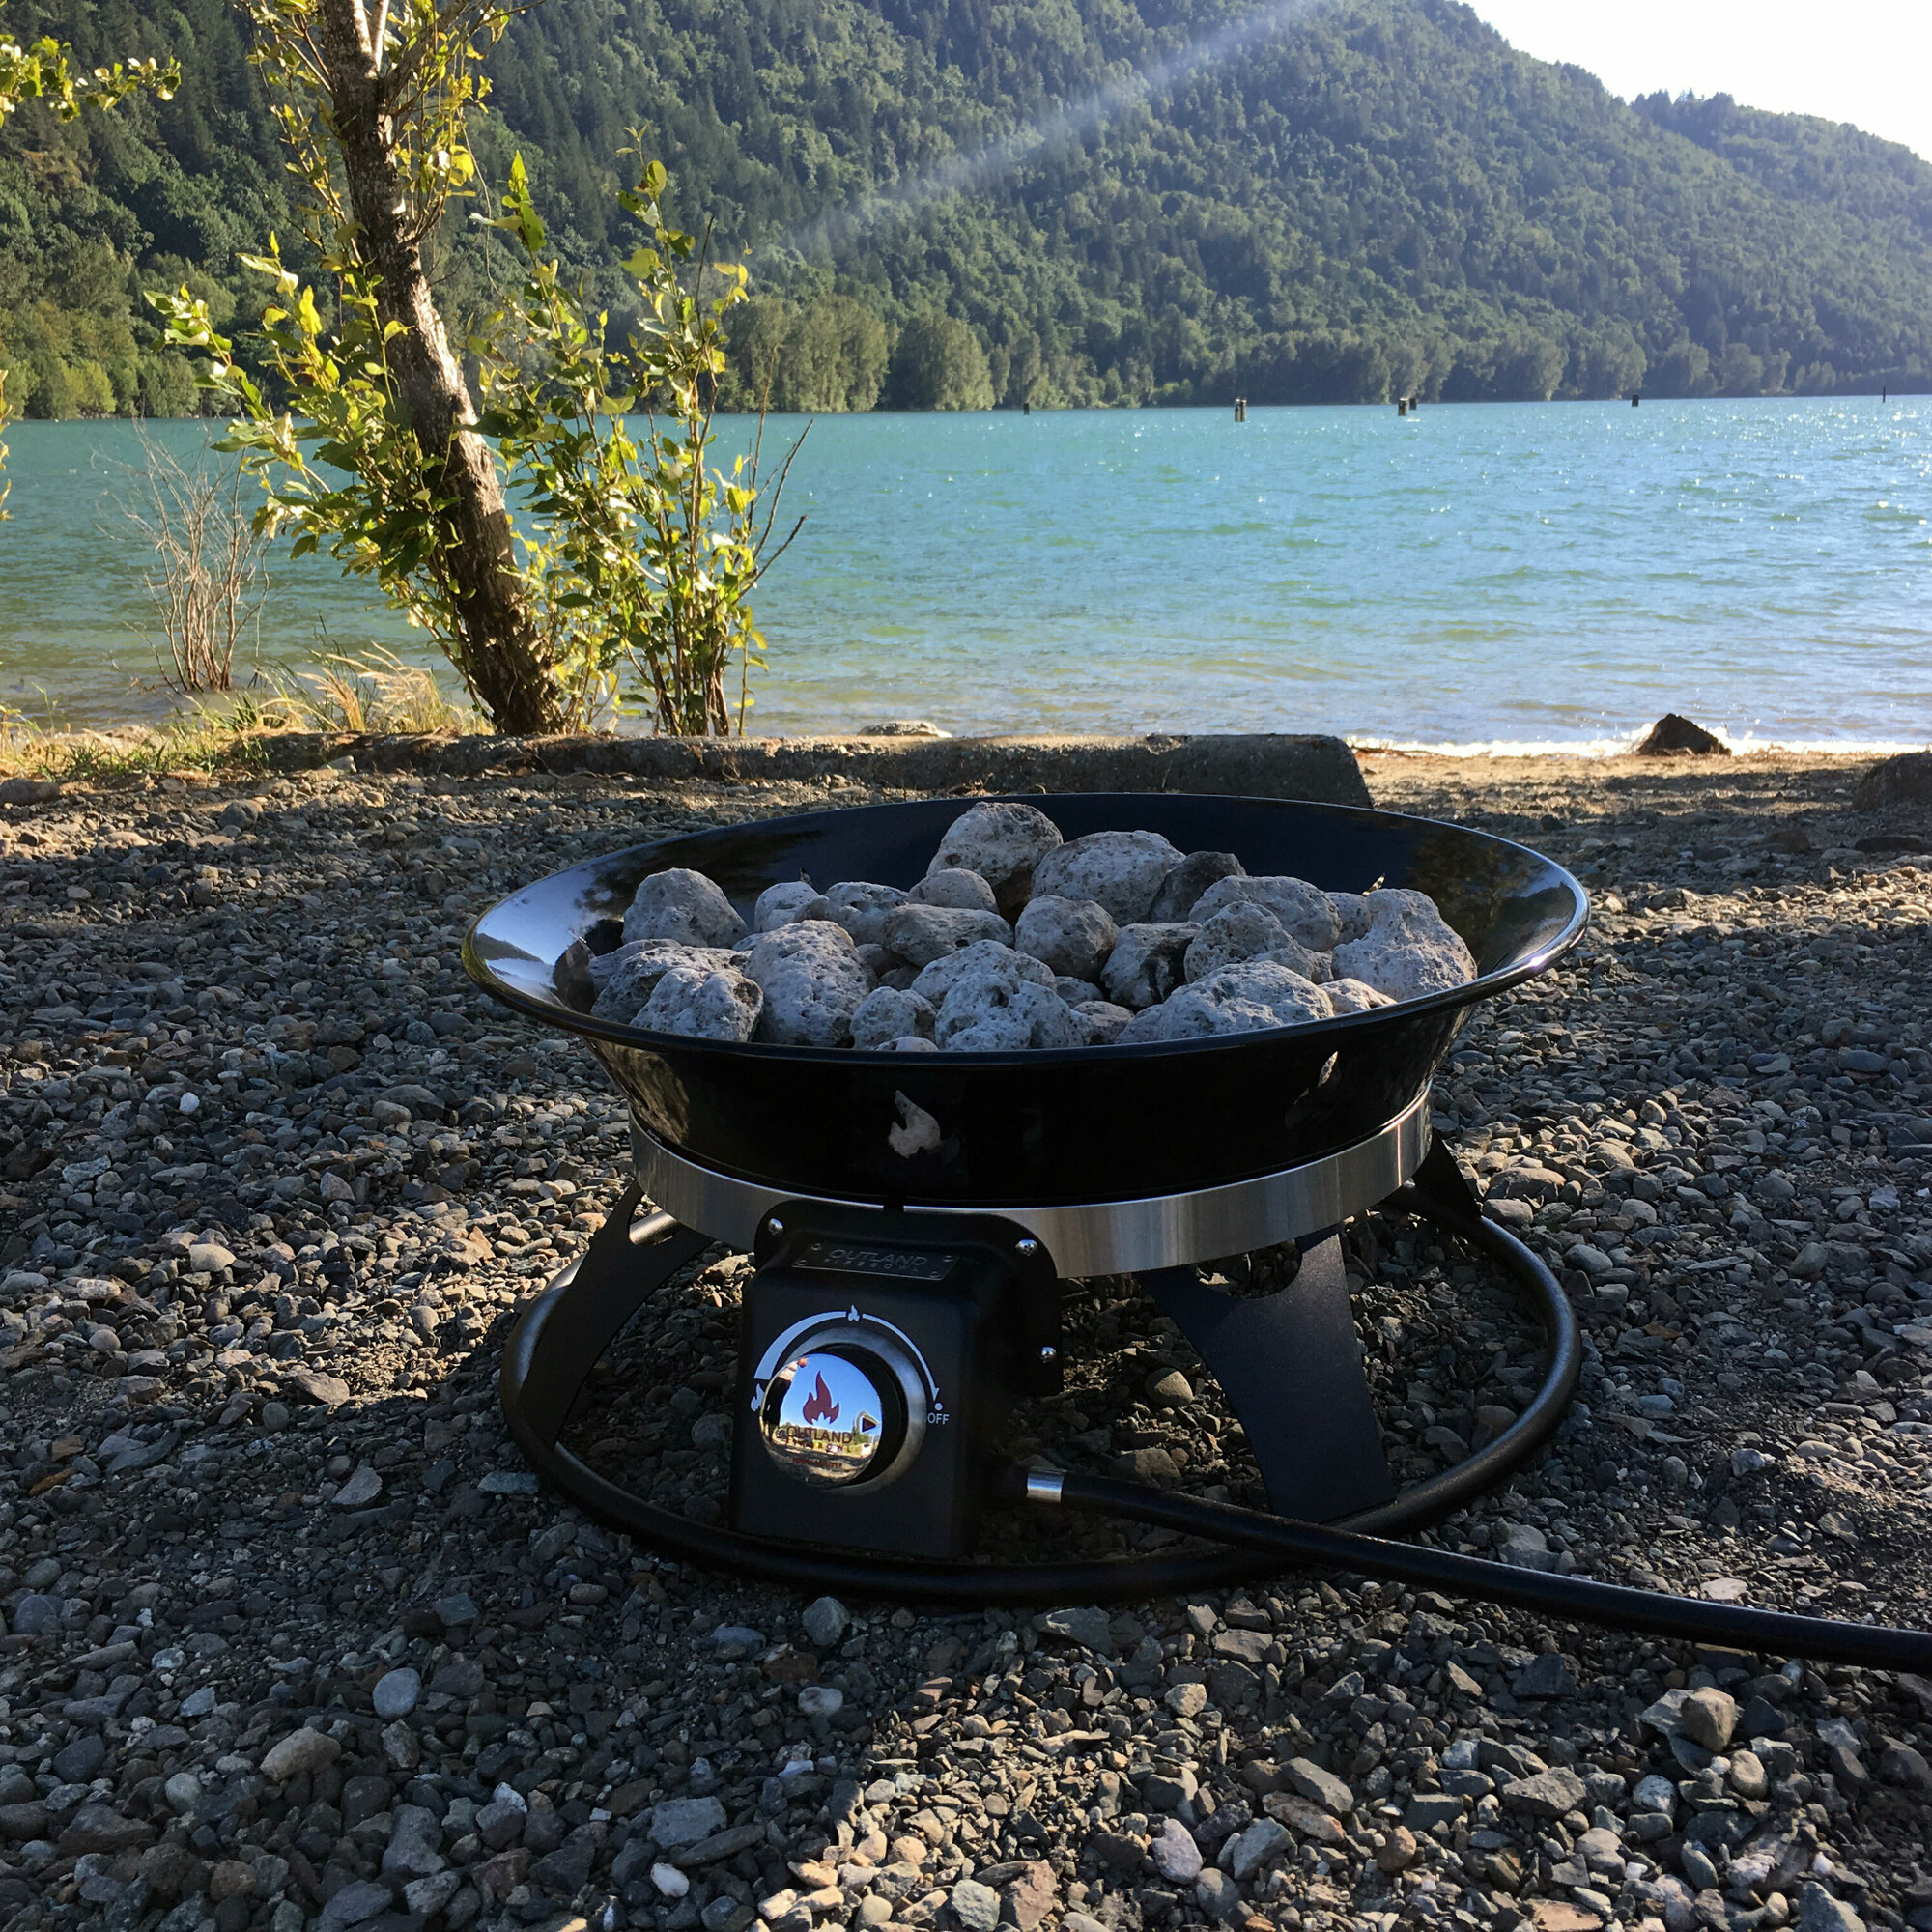 Outland Living Cypress Steel Propane Fire Pit 873975008636 ... on Outland Living Cypress Fire Pit id=15231